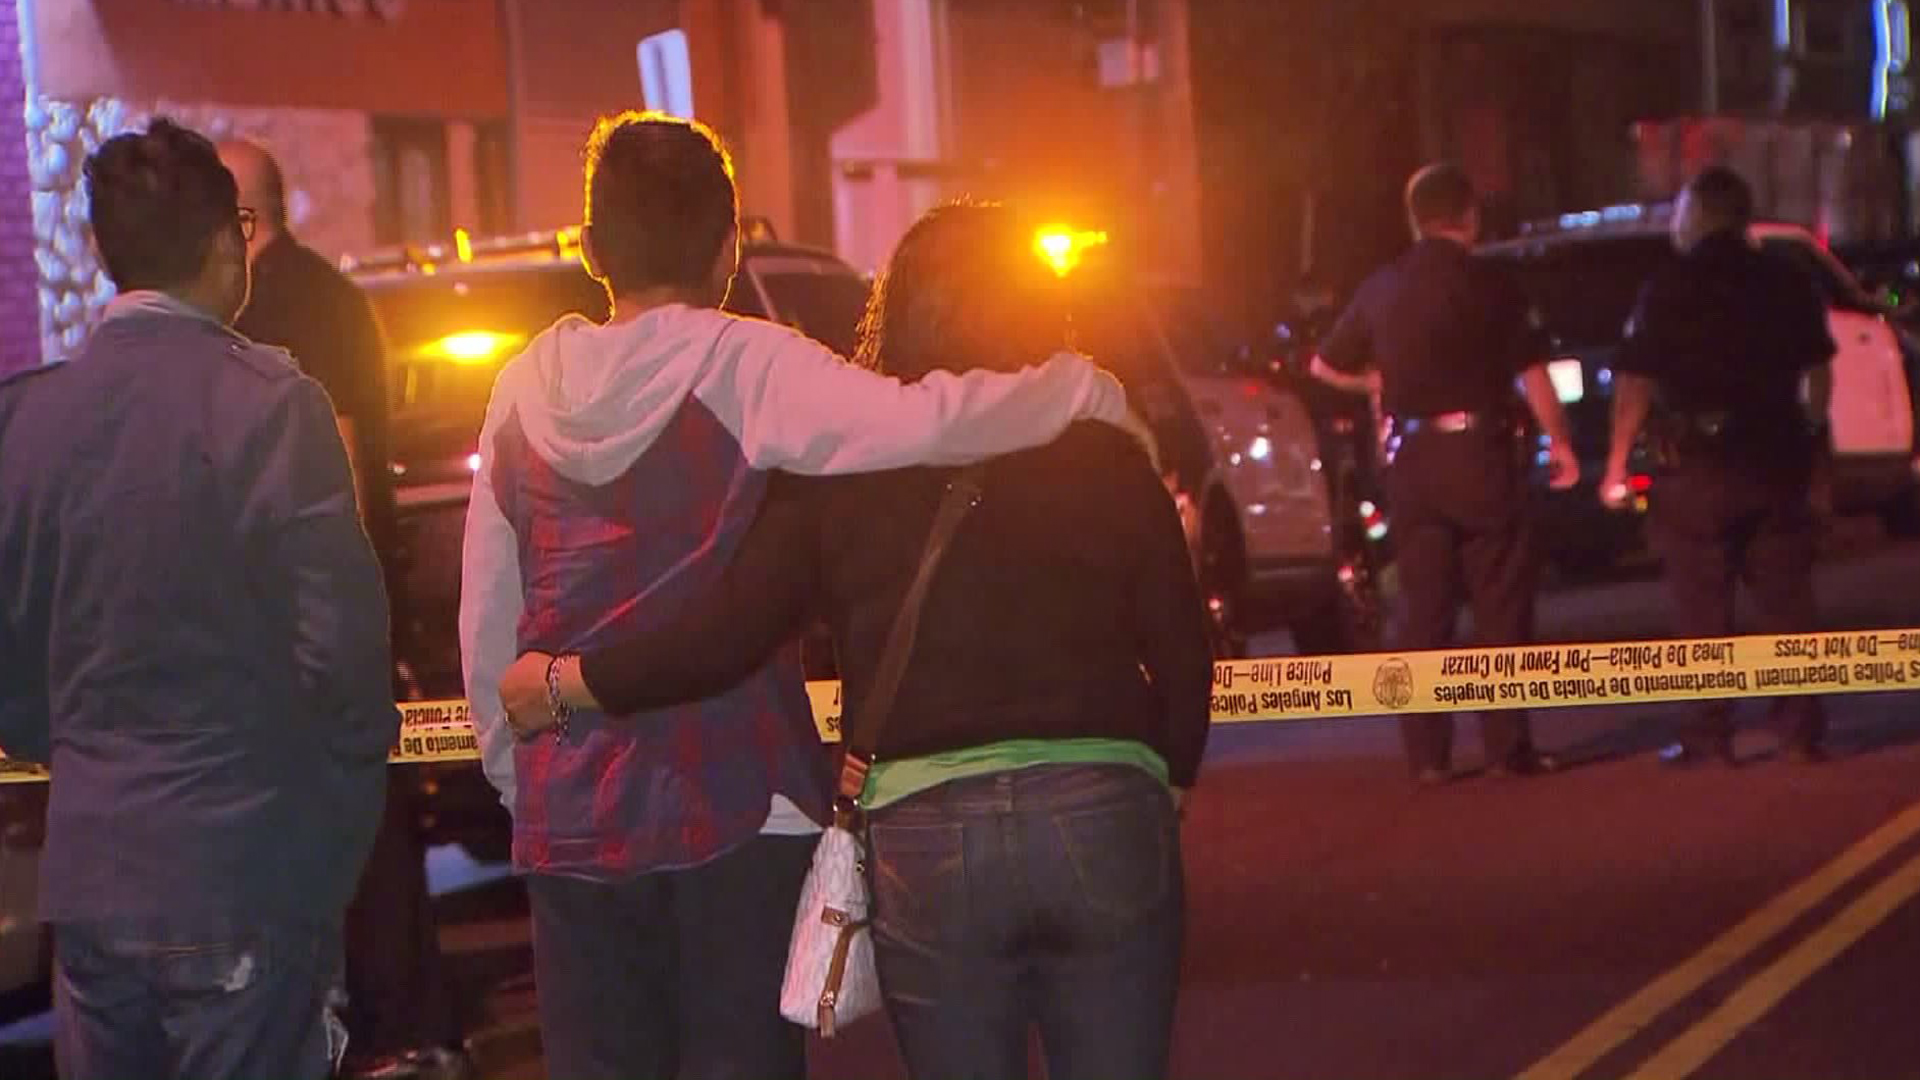 People gather after a fatal hit-and-run in the Fashion District on Nov. 11, 2016. (Credit: KTLA)